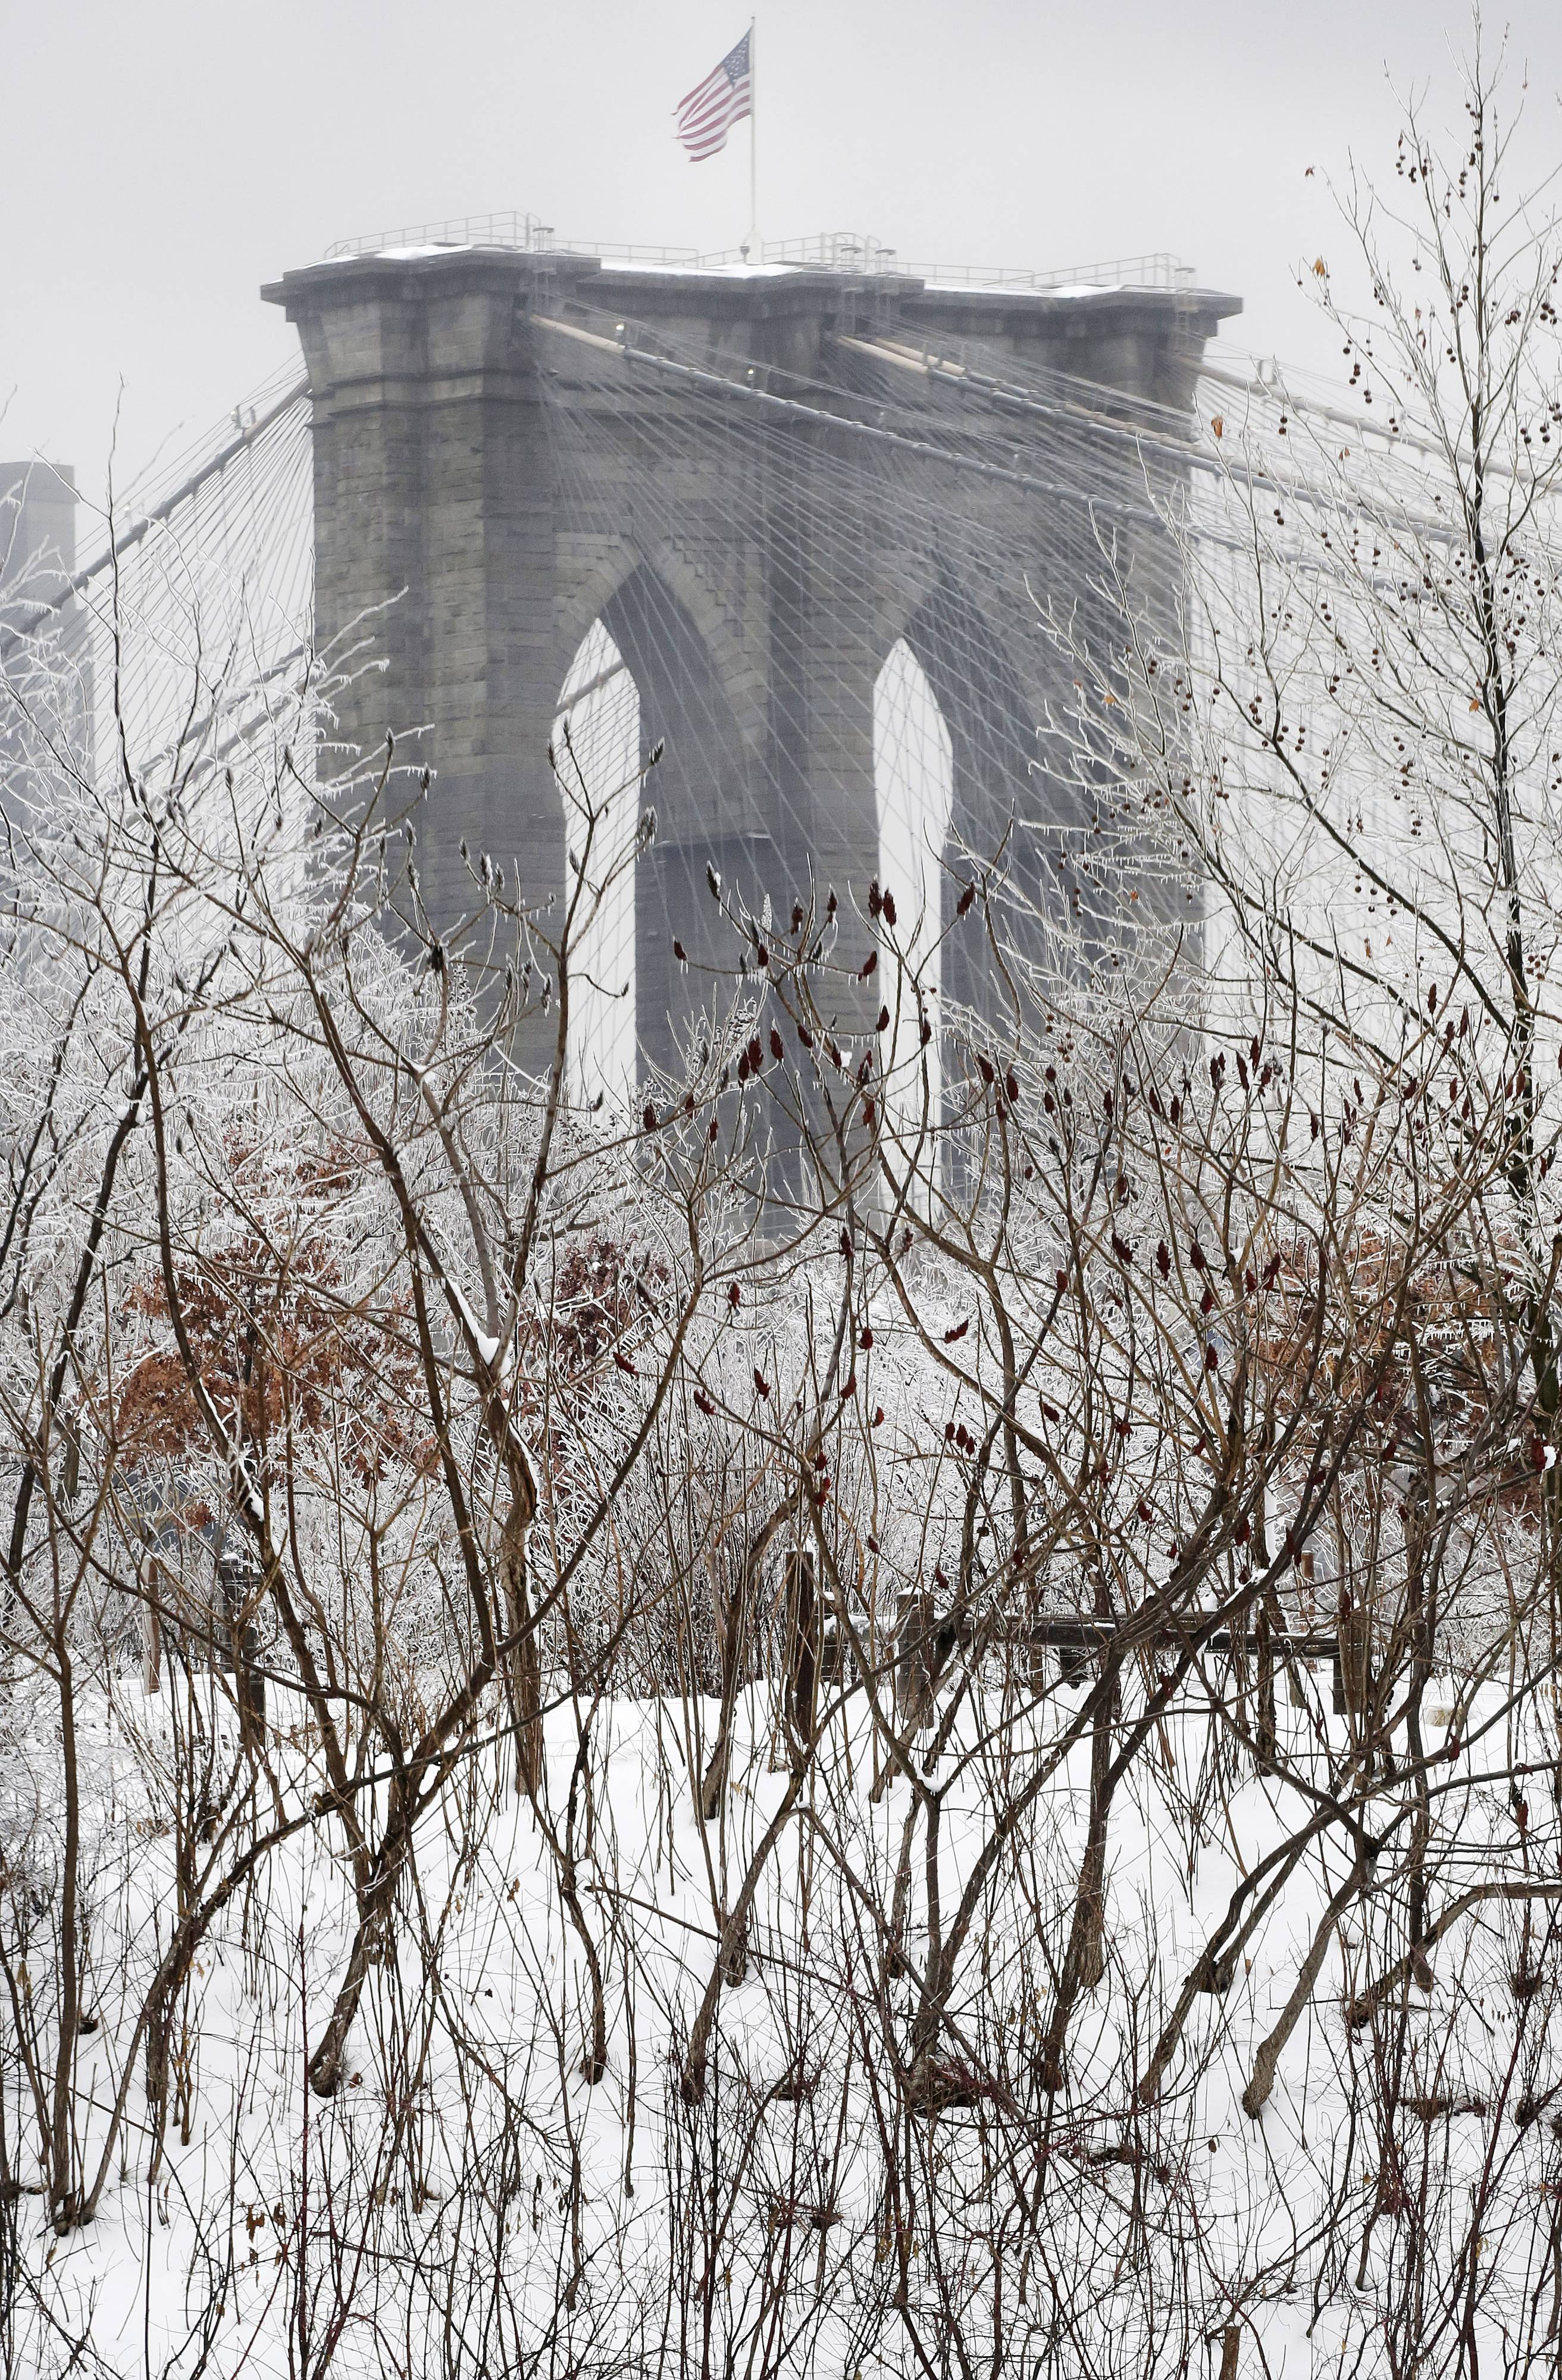 The Brooklyn Bridge overlooks a snow-covered park Wednesday, Feb. 5, 2014, in New York. Gov. Andrew Cuomo declared a statewide state of emergency, closing Interstate 84 between the Connecticut and Pennsylvania borders until midafternoon.